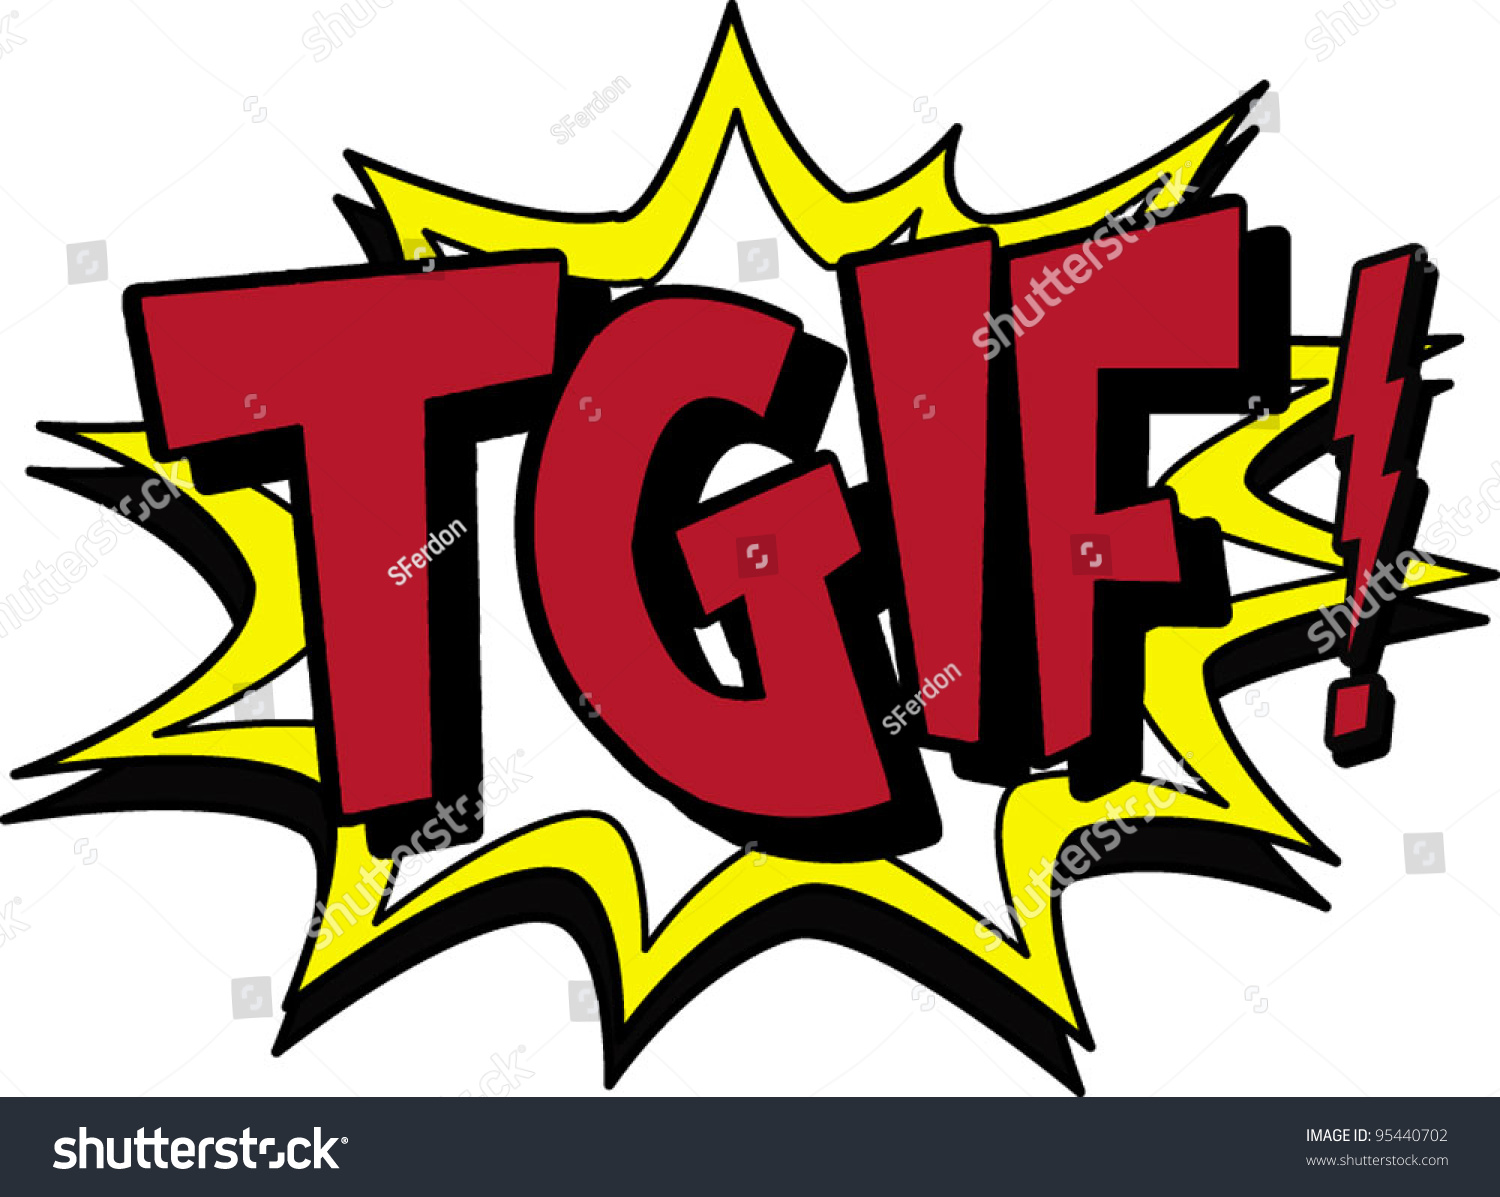 Gallery For Tgif Clipart.